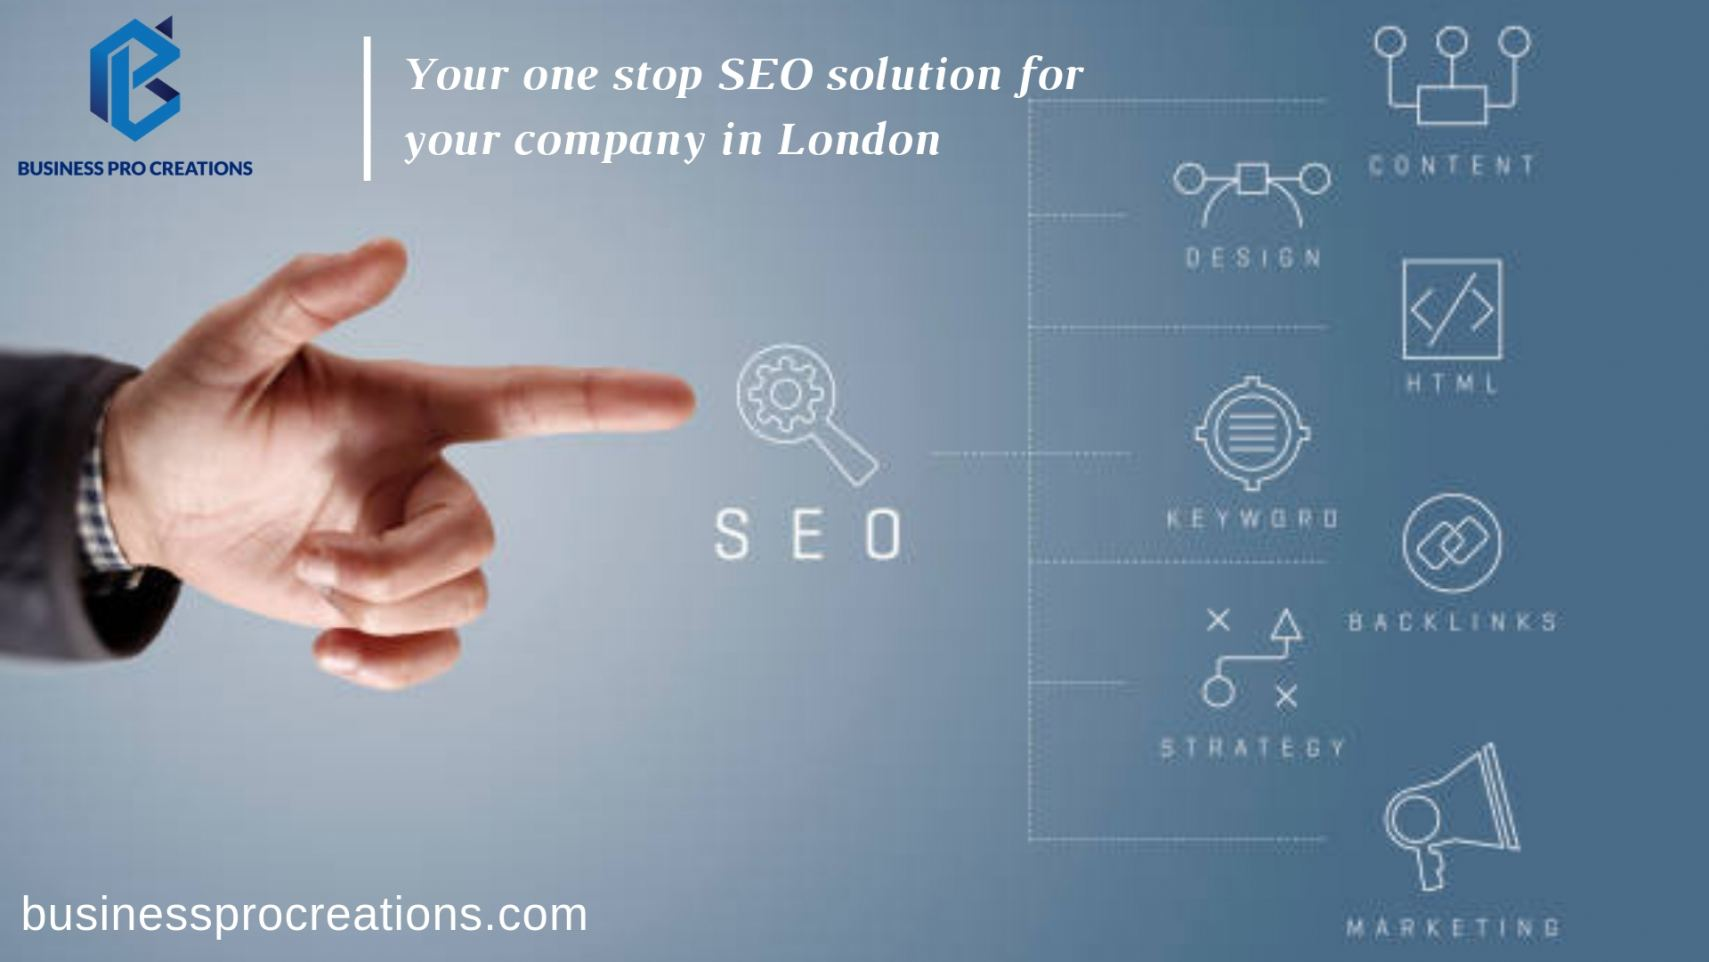 BPC - SEO services London